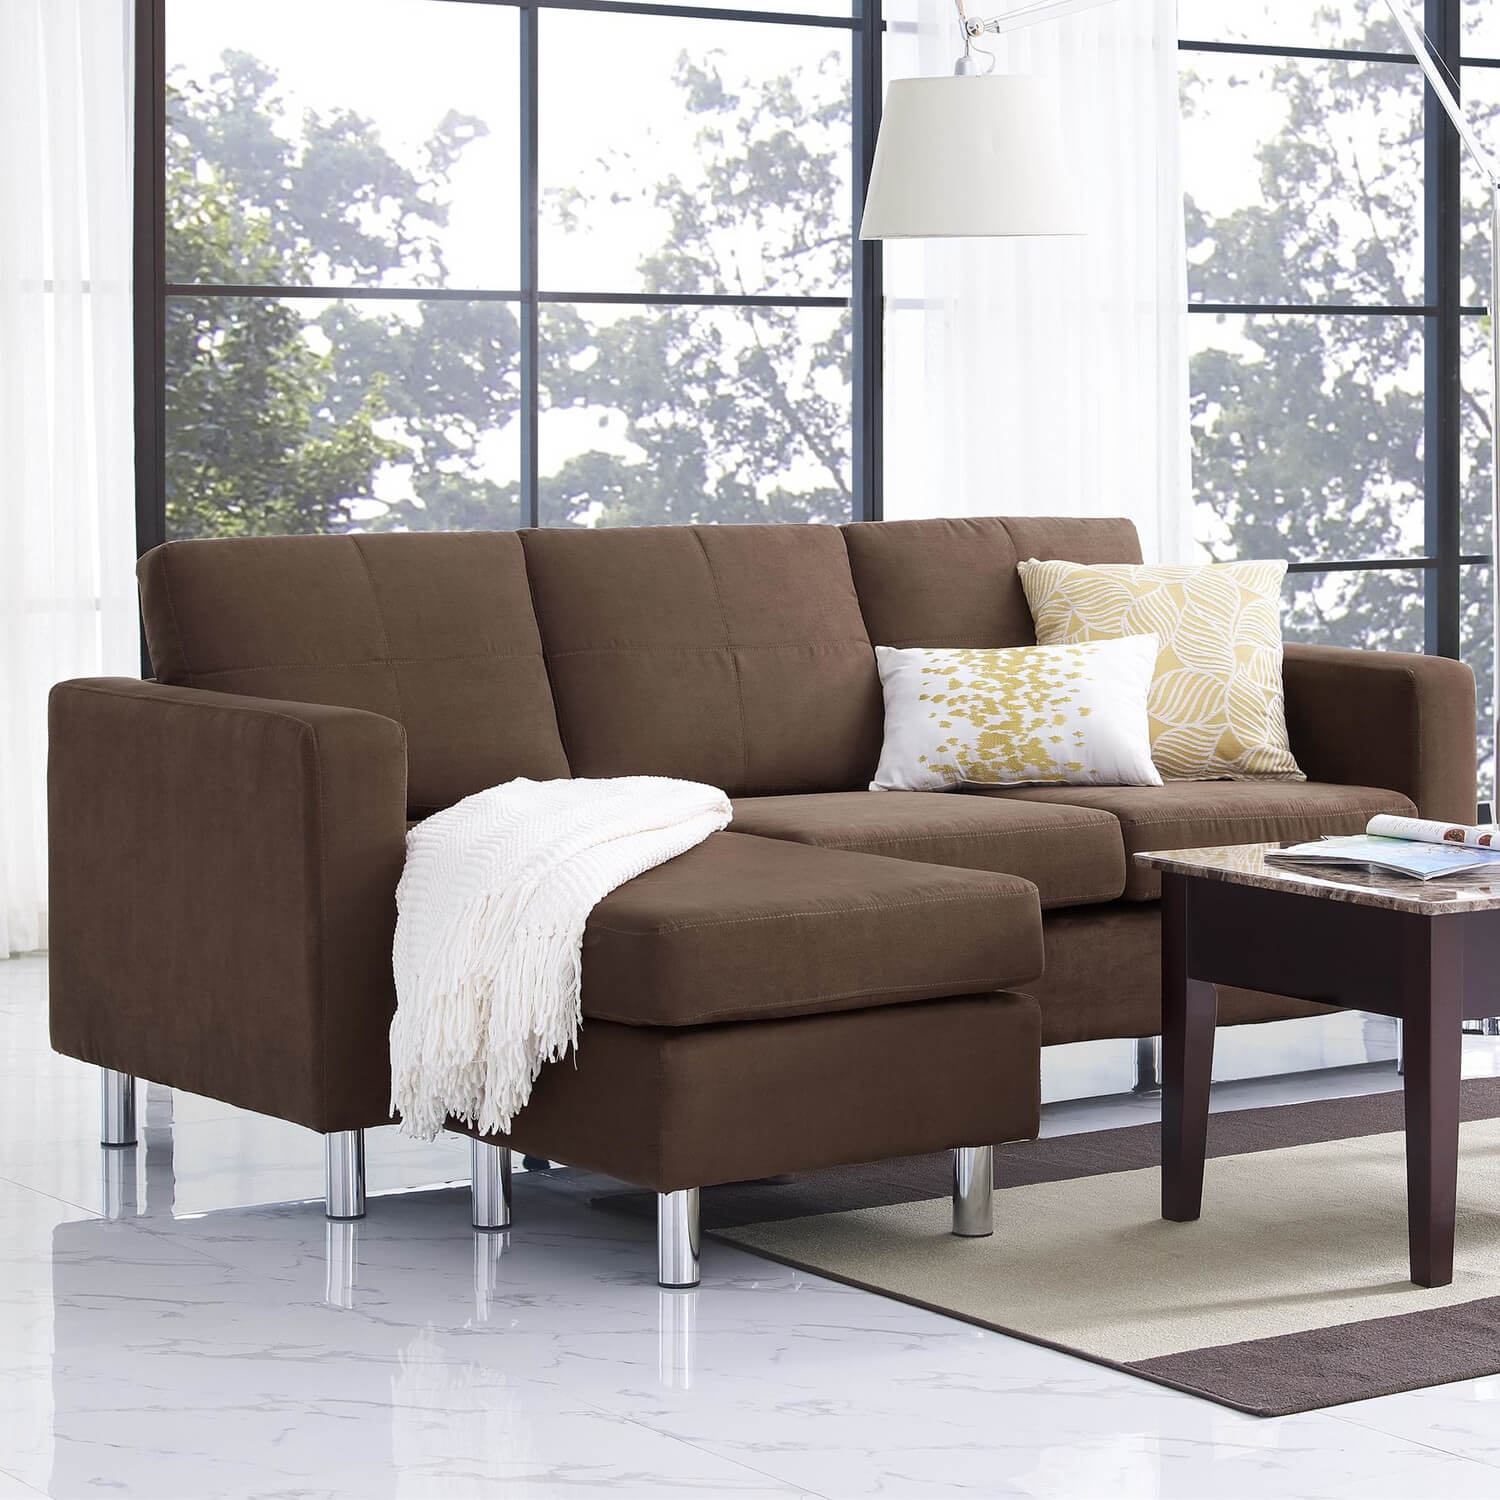 Here we see the same couch in a rich brown microfiber upholstery. The sofas also give you the choice of clean track arm design (shown) or a rolled arm design.